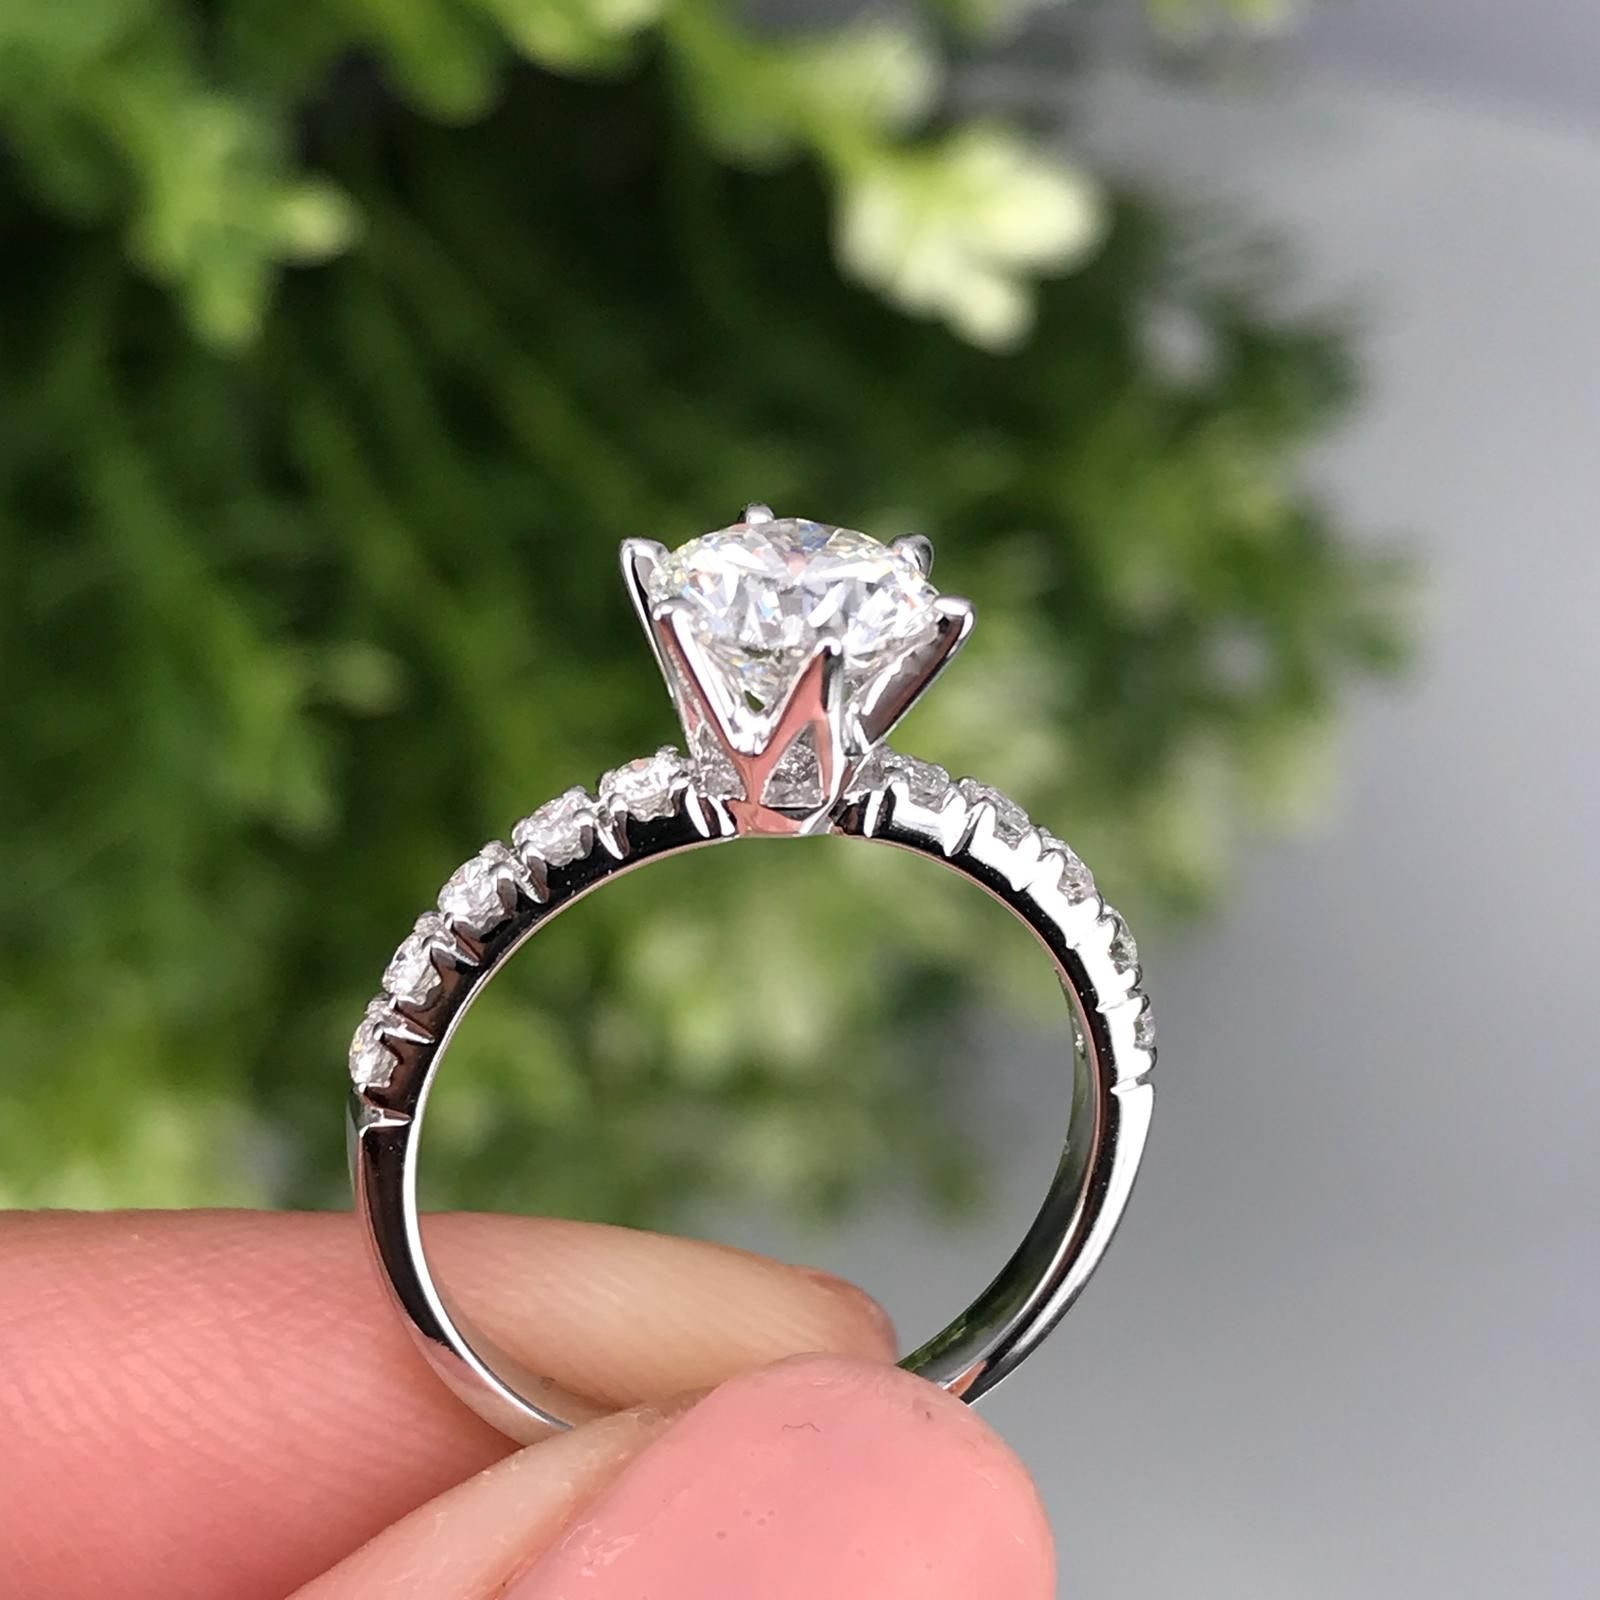 1 Carat Diamond 6 Prongs Simple Engagement Rings Engagement Ring Online Buying An Engagement Ring